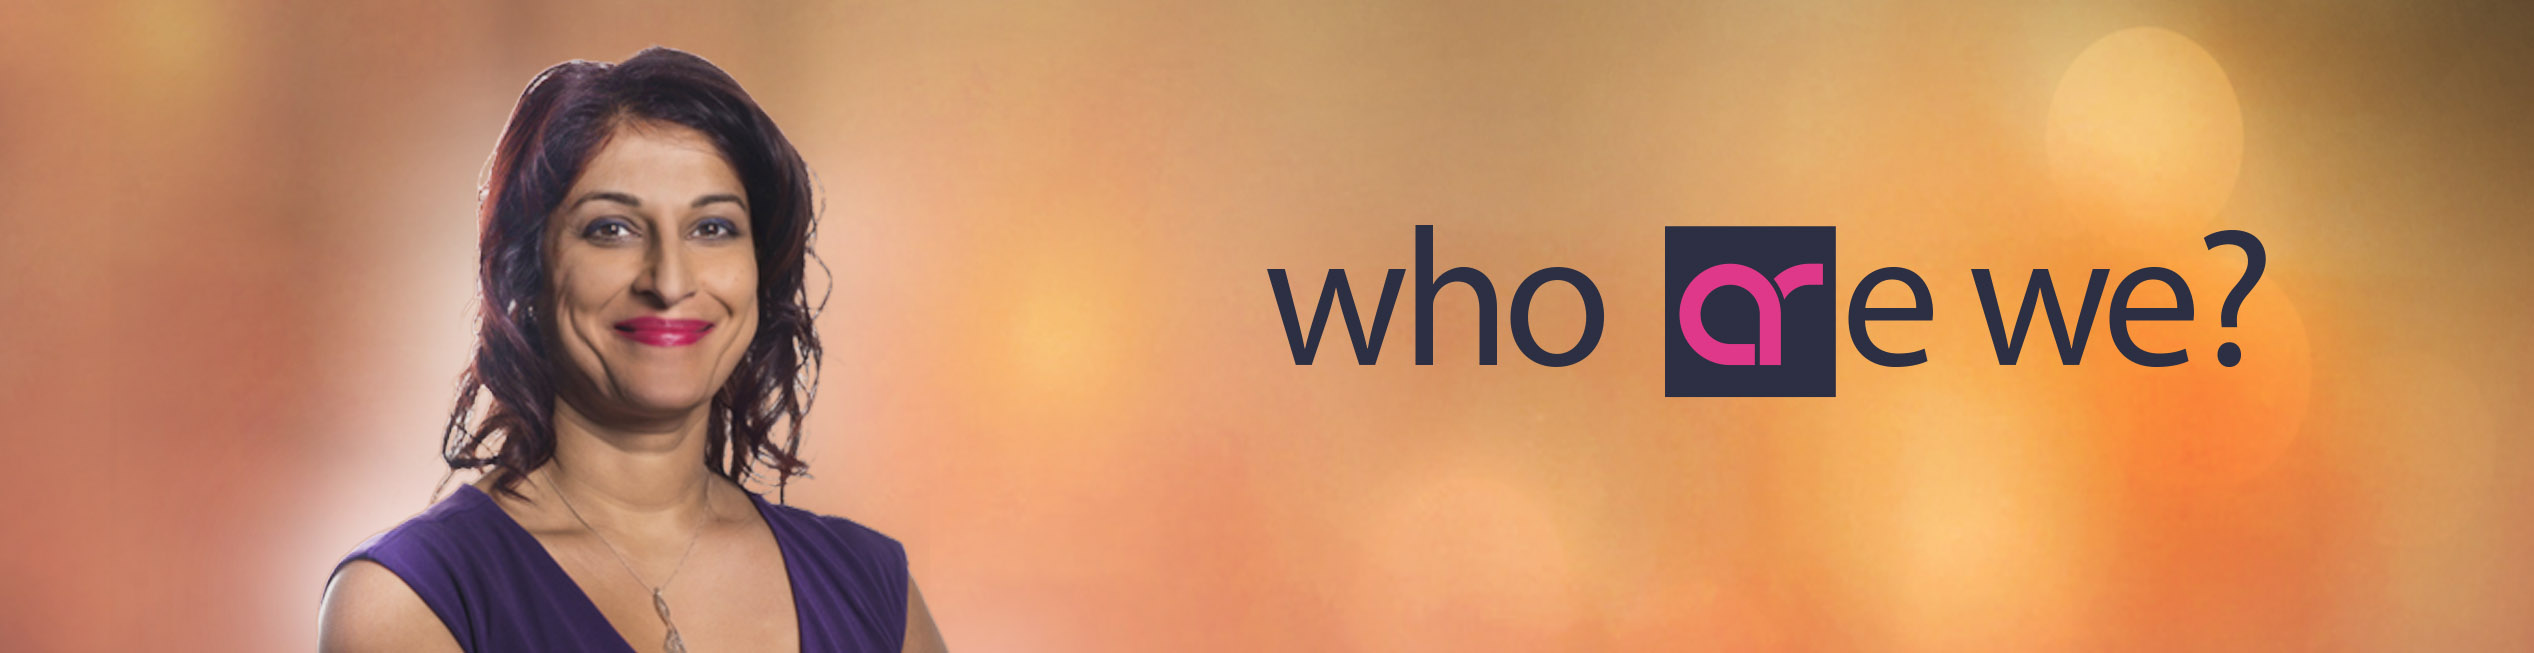 banner-who-are-we